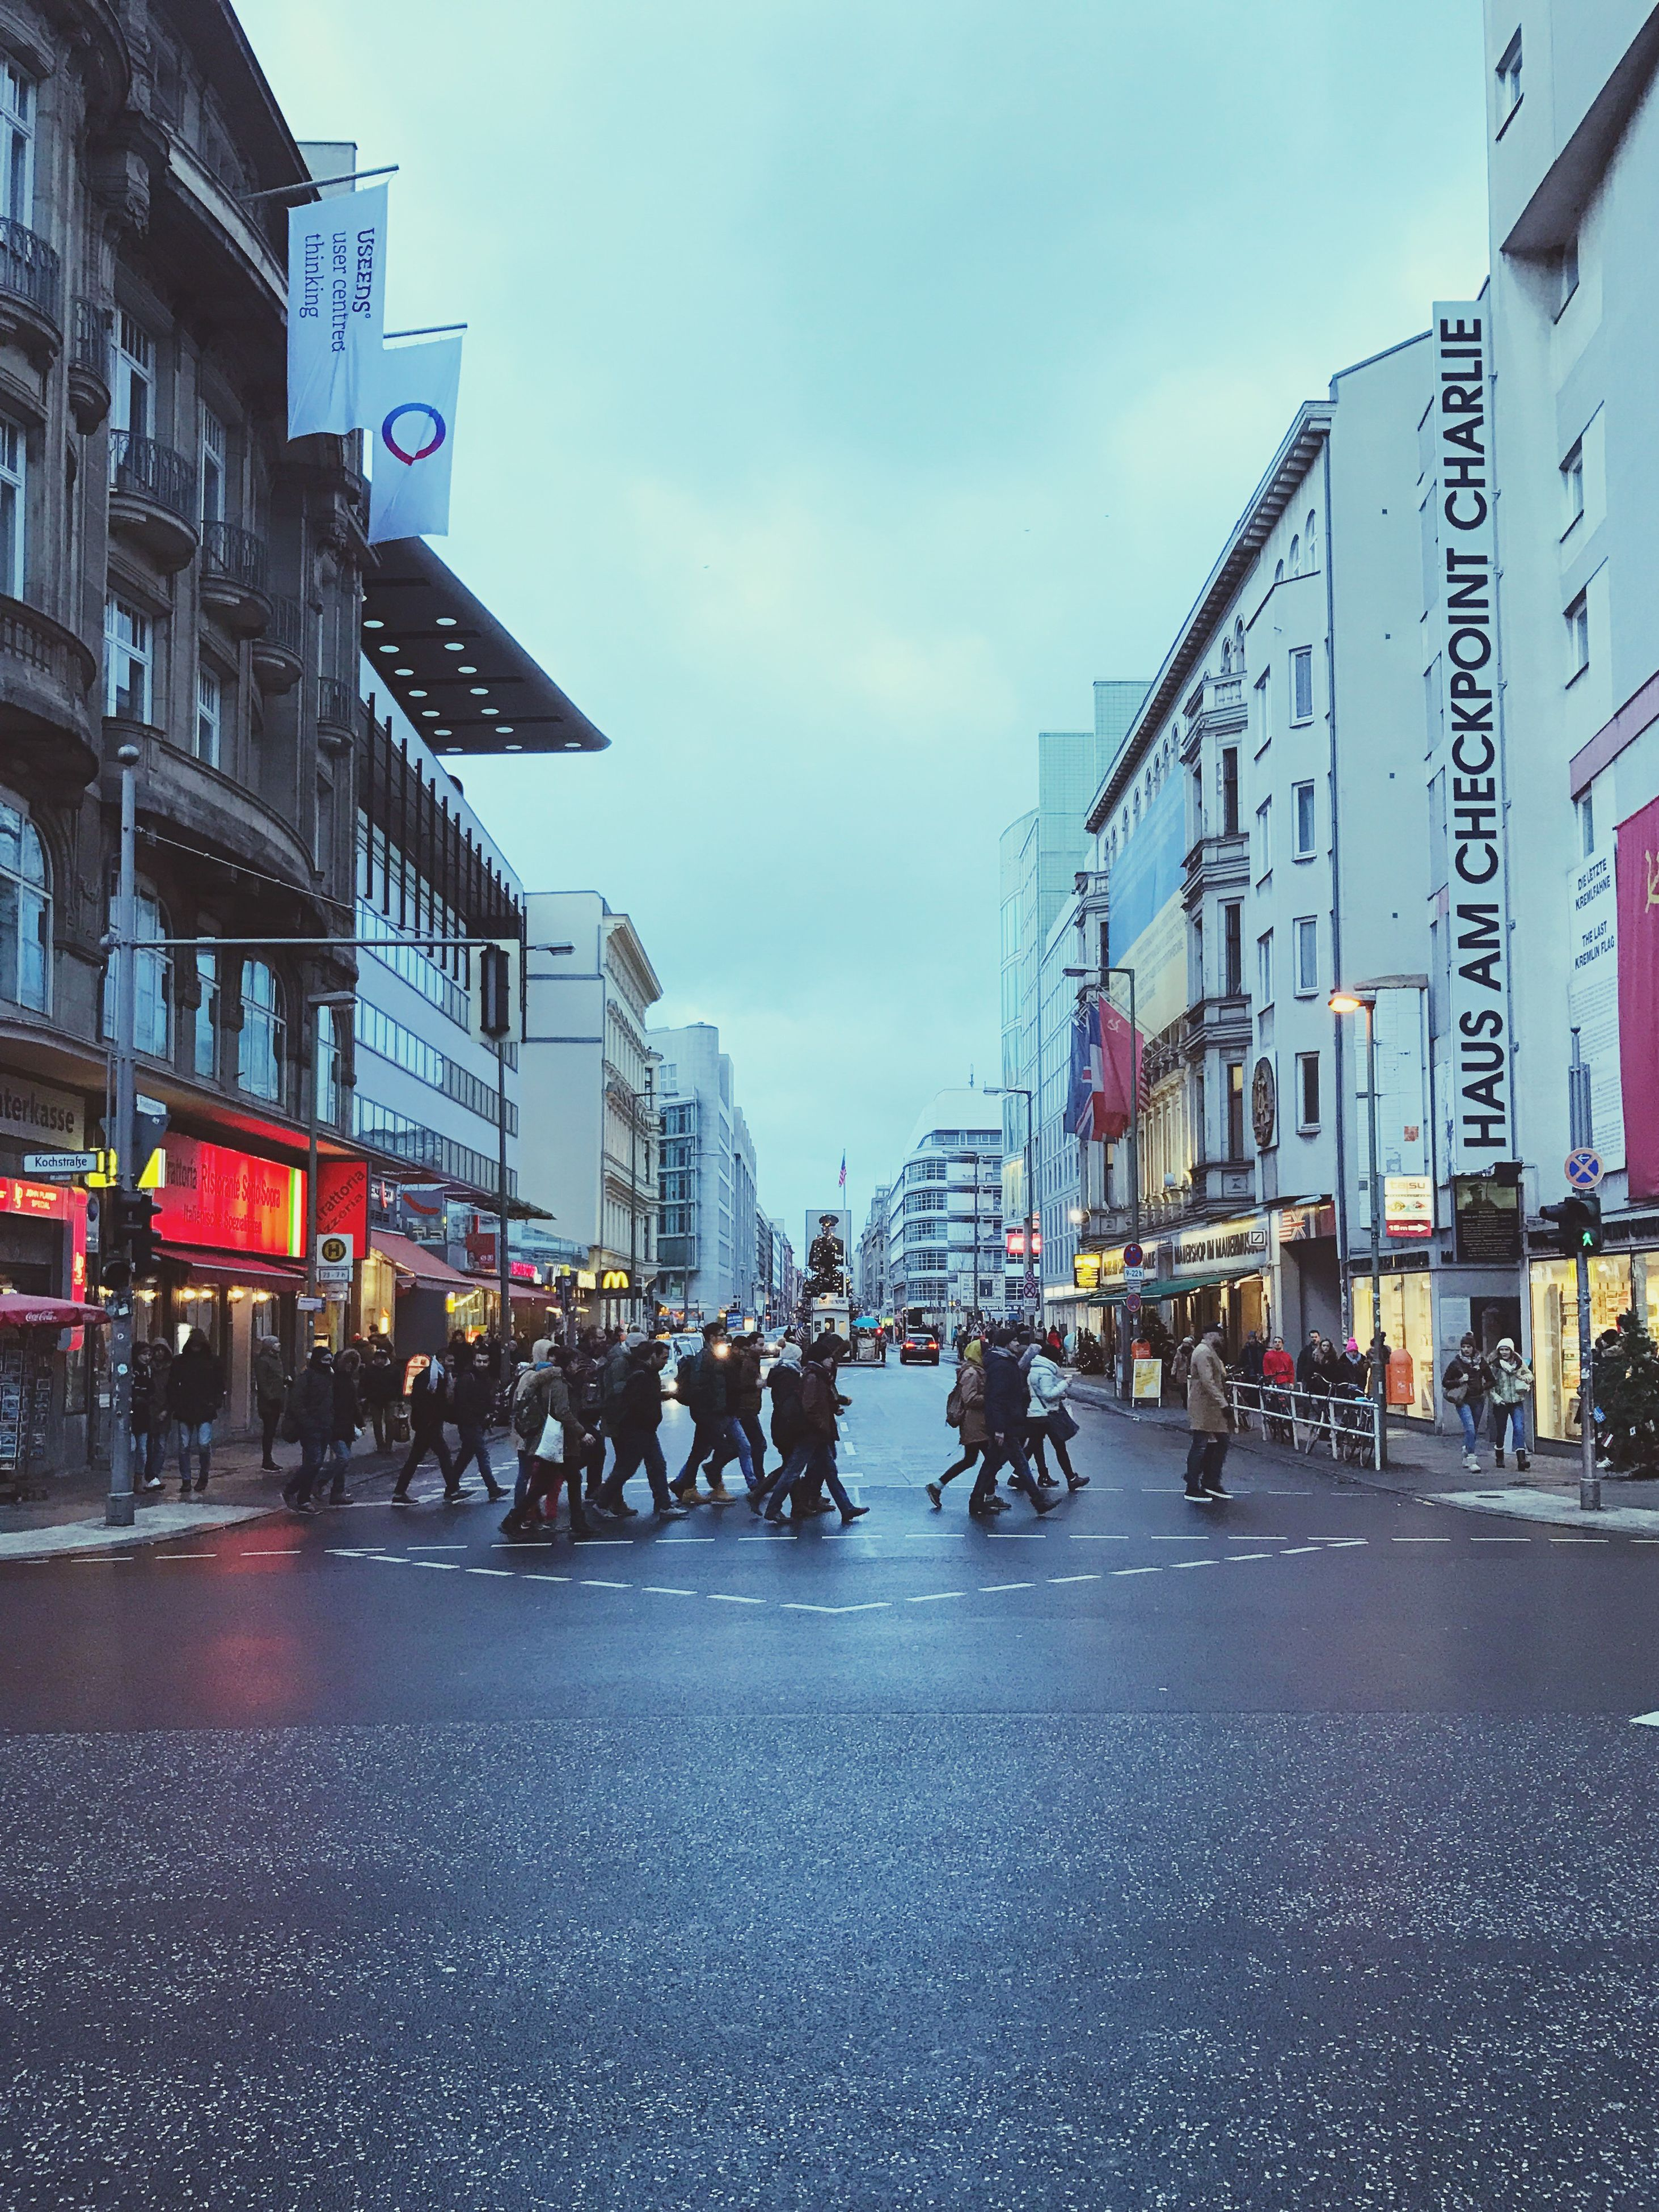 city, building exterior, street, built structure, city street, architecture, city life, outdoors, real people, large group of people, street scene, sky, road, day, people, adults only, adult